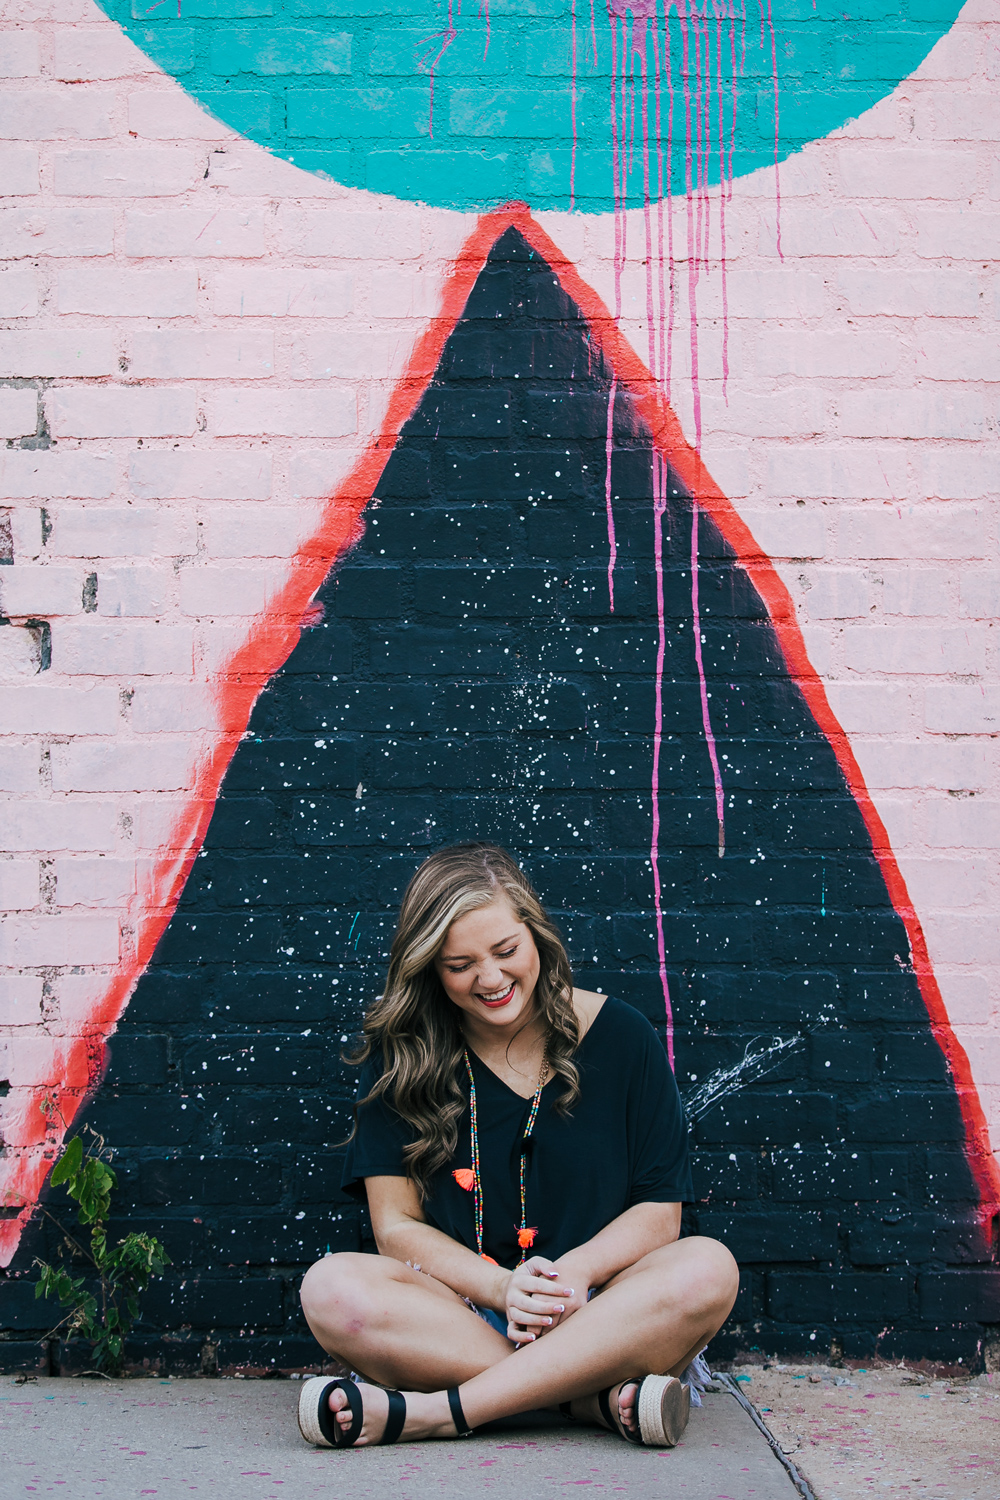 High school senior girl wearing shorts and black top, sitting in front of a triangle painted on a brick building in automobile alley, okc.